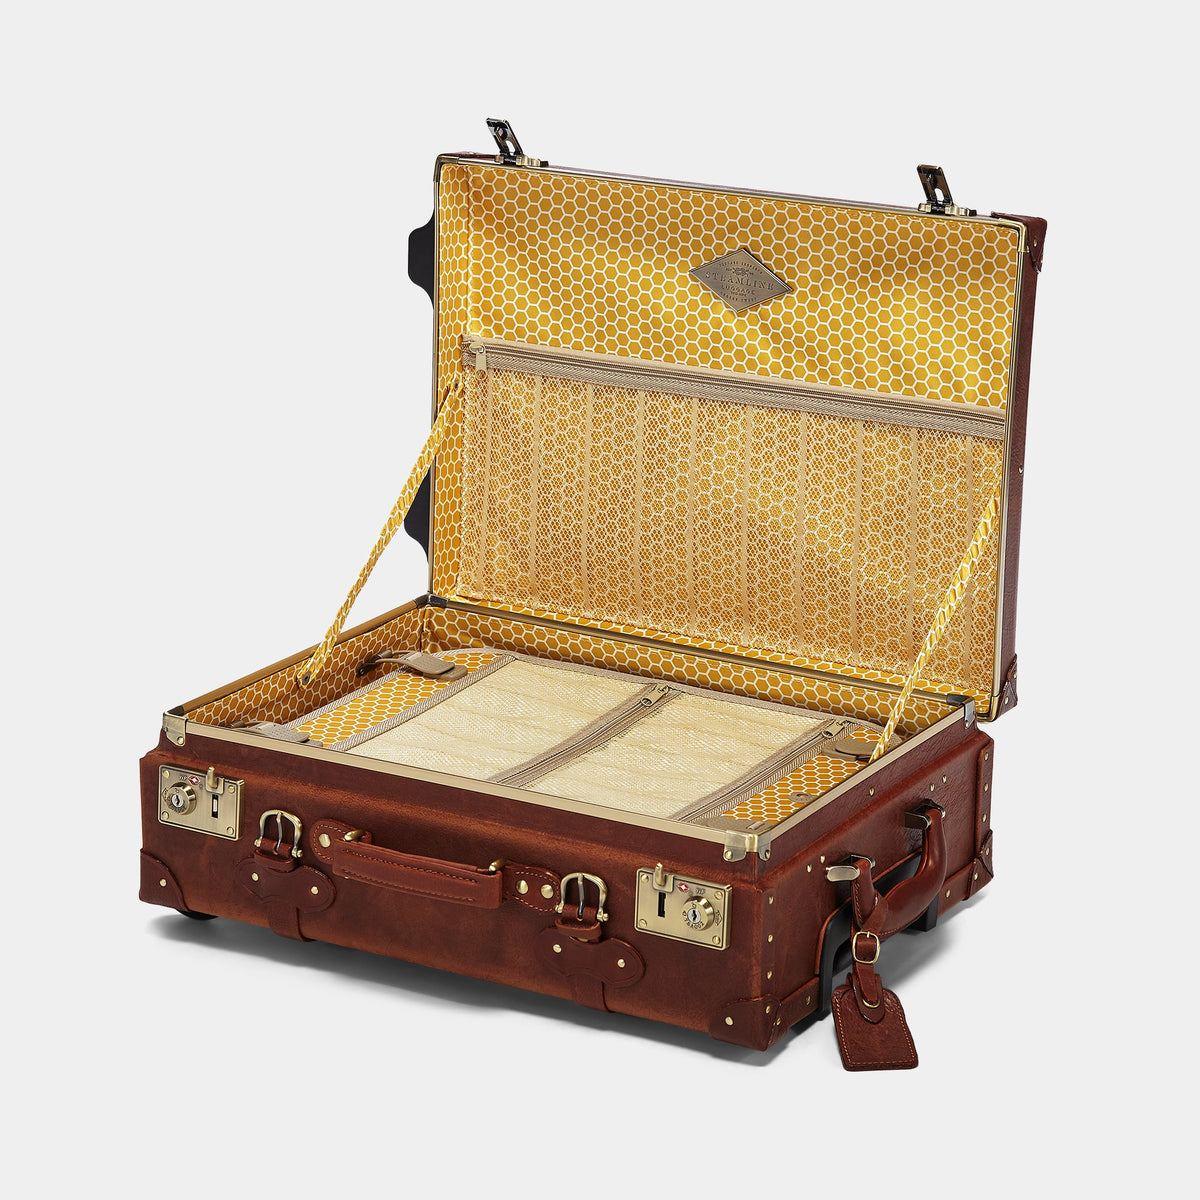 The Pioneer Carryon - Vintage Style leather suitcase - Interior Front